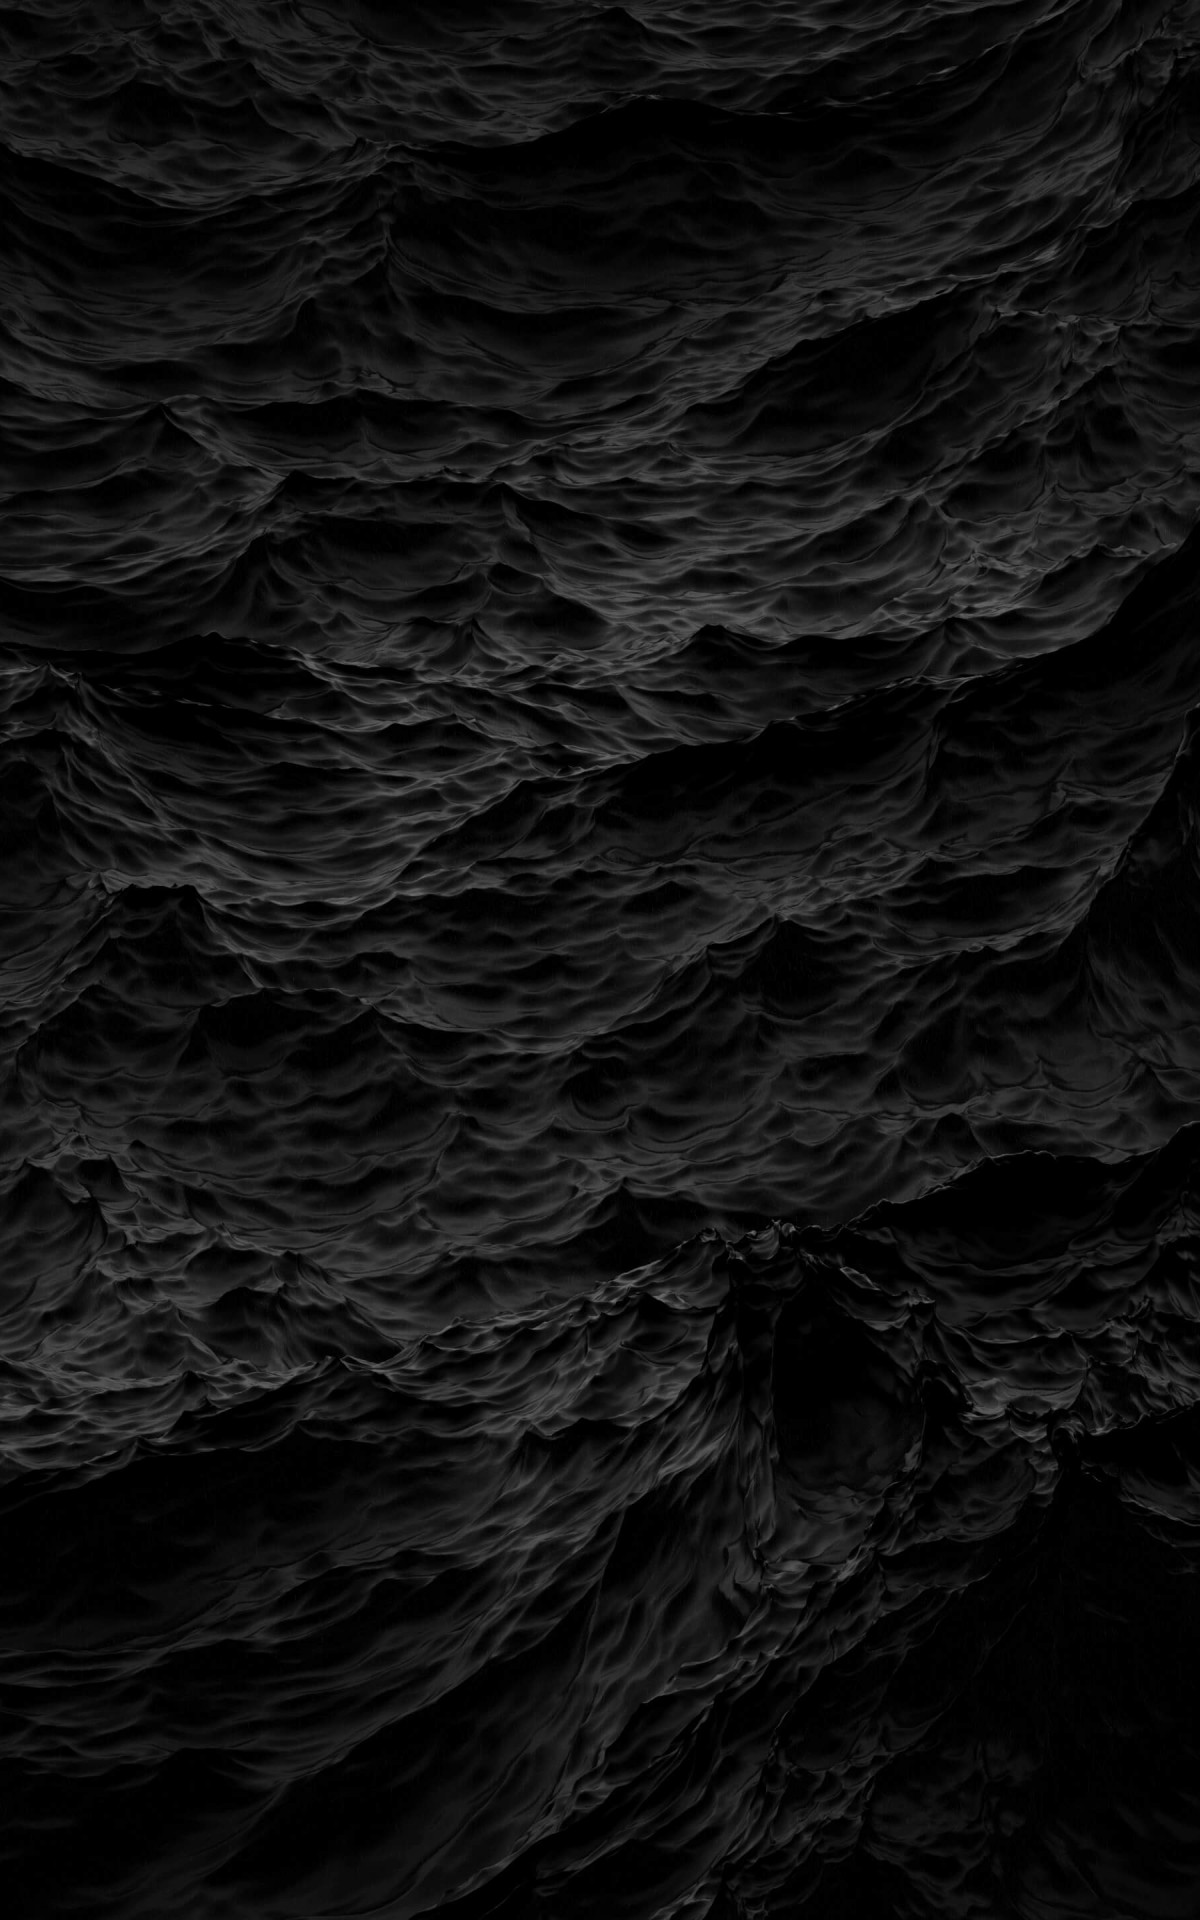 Black Waves Wallpaper for Amazon Kindle Fire HDX